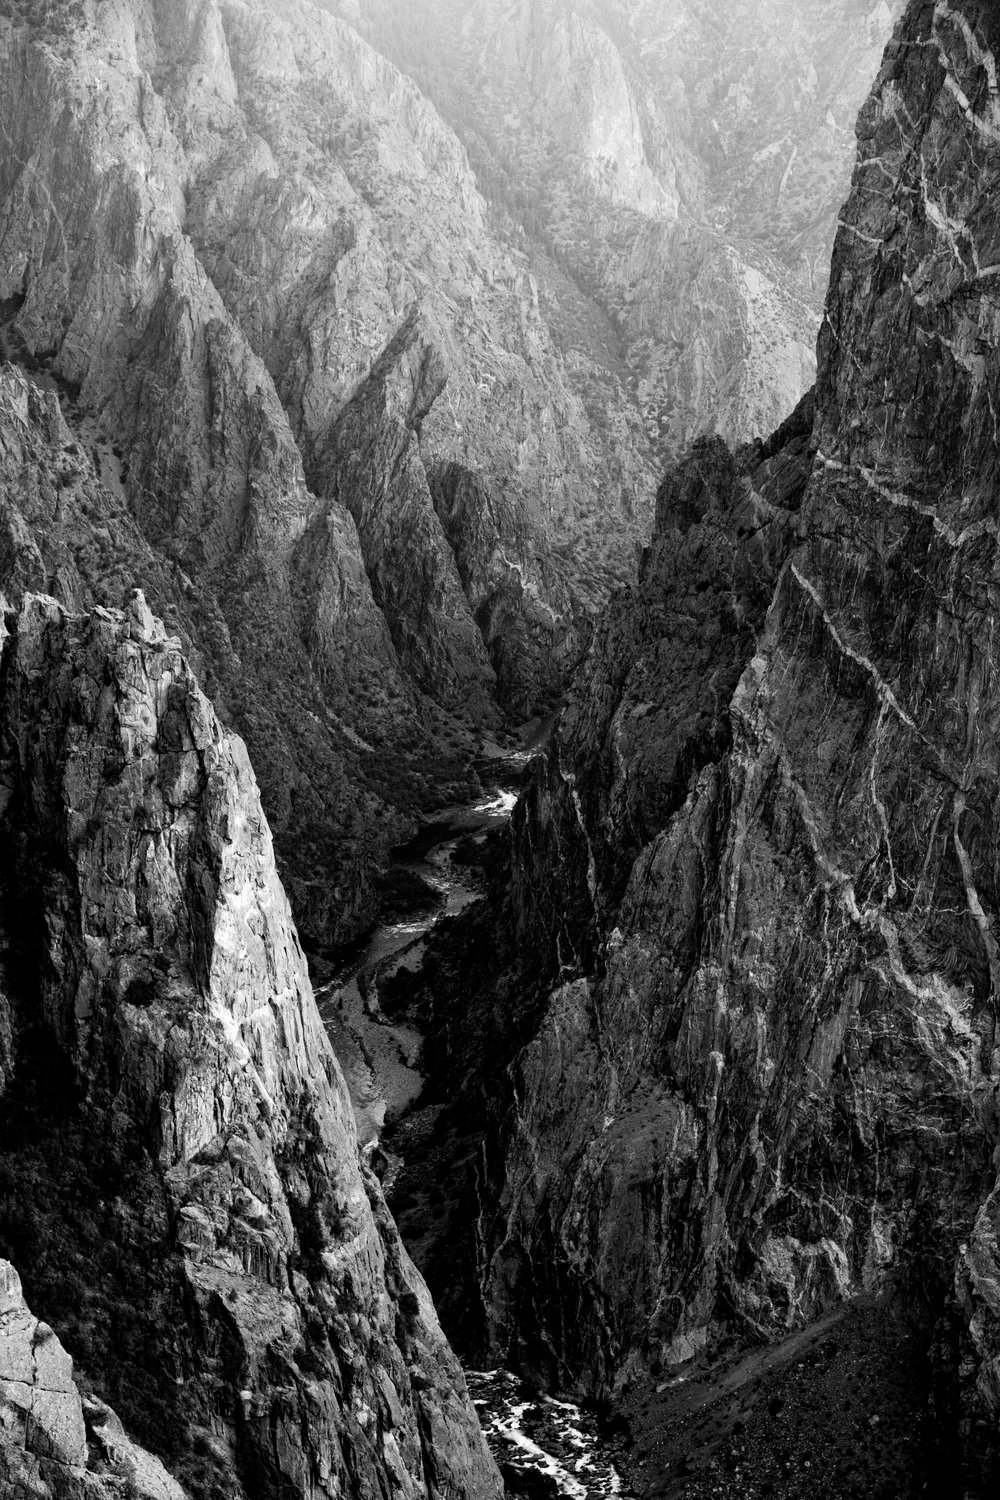 Gunnison Gorge, CO Picture from: Unsplash.com